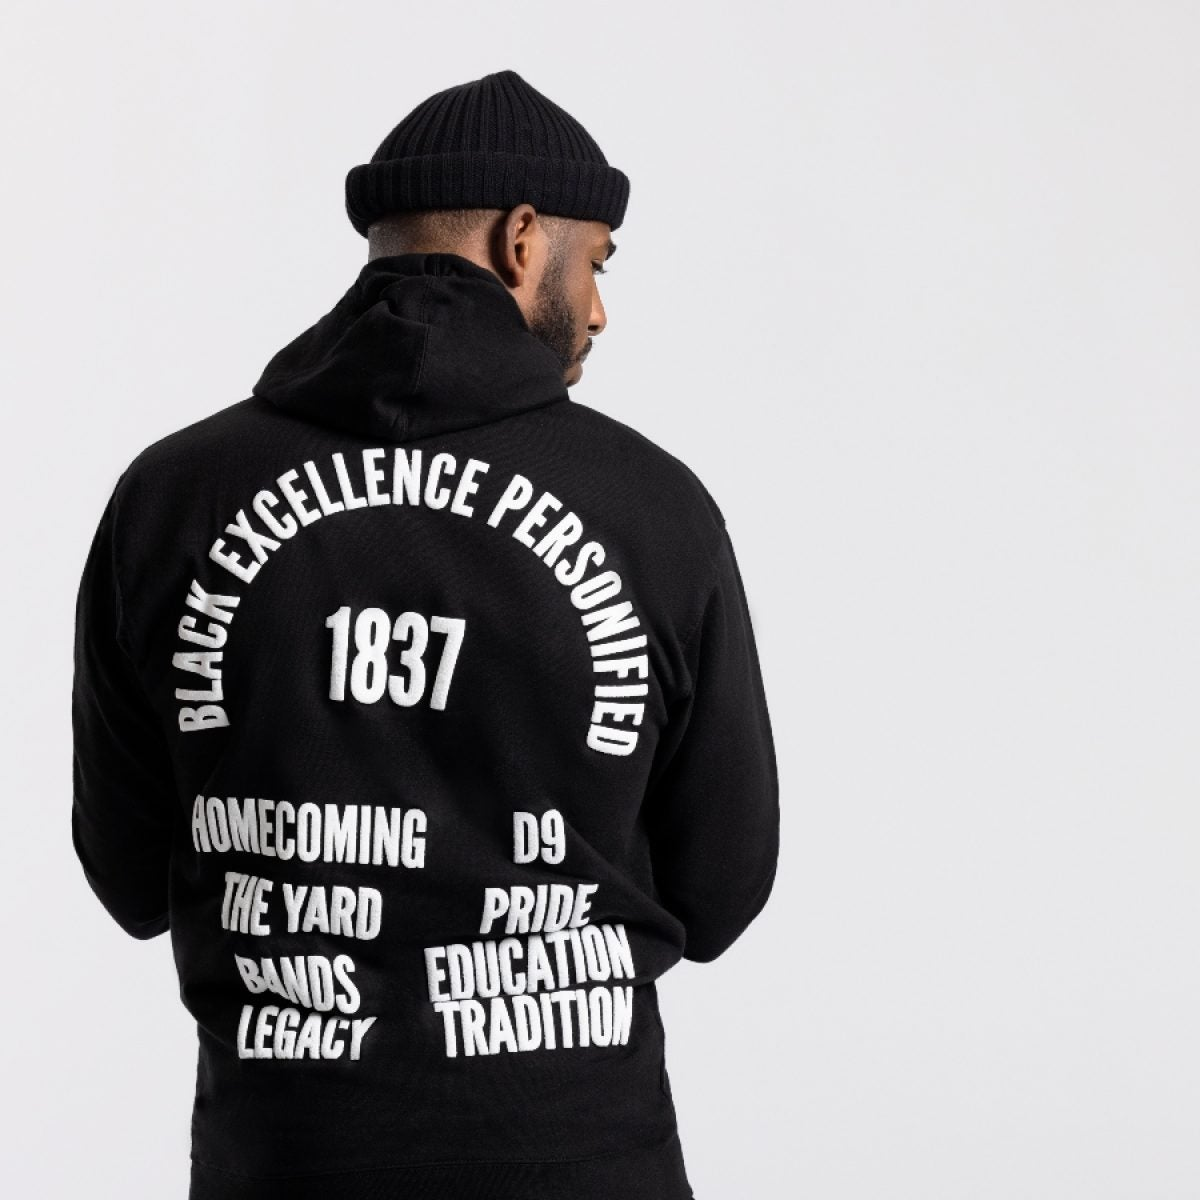 Exclusive: Chris Paul's Social Change Fund And Bleacher Report Partner On Capsule Collection Supporting HBCUs